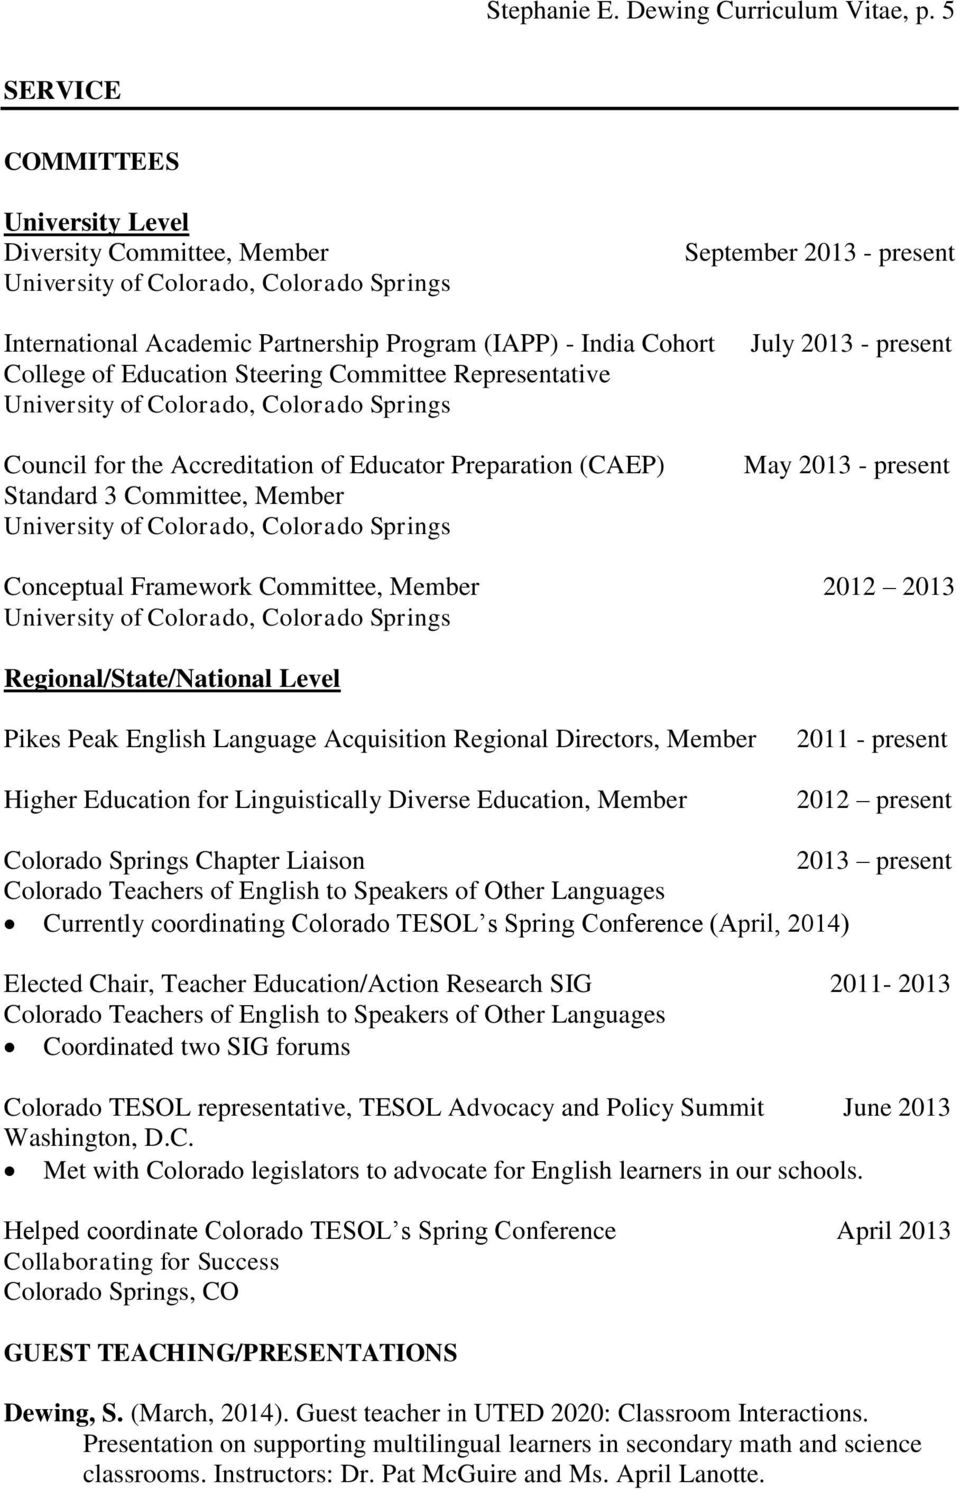 Representative Council for the Accreditation of Educator Preparation (CAEP) Standard 3 Committee, Member July 2013 - present May 2013 - present Conceptual Framework Committee, Member 2012 2013